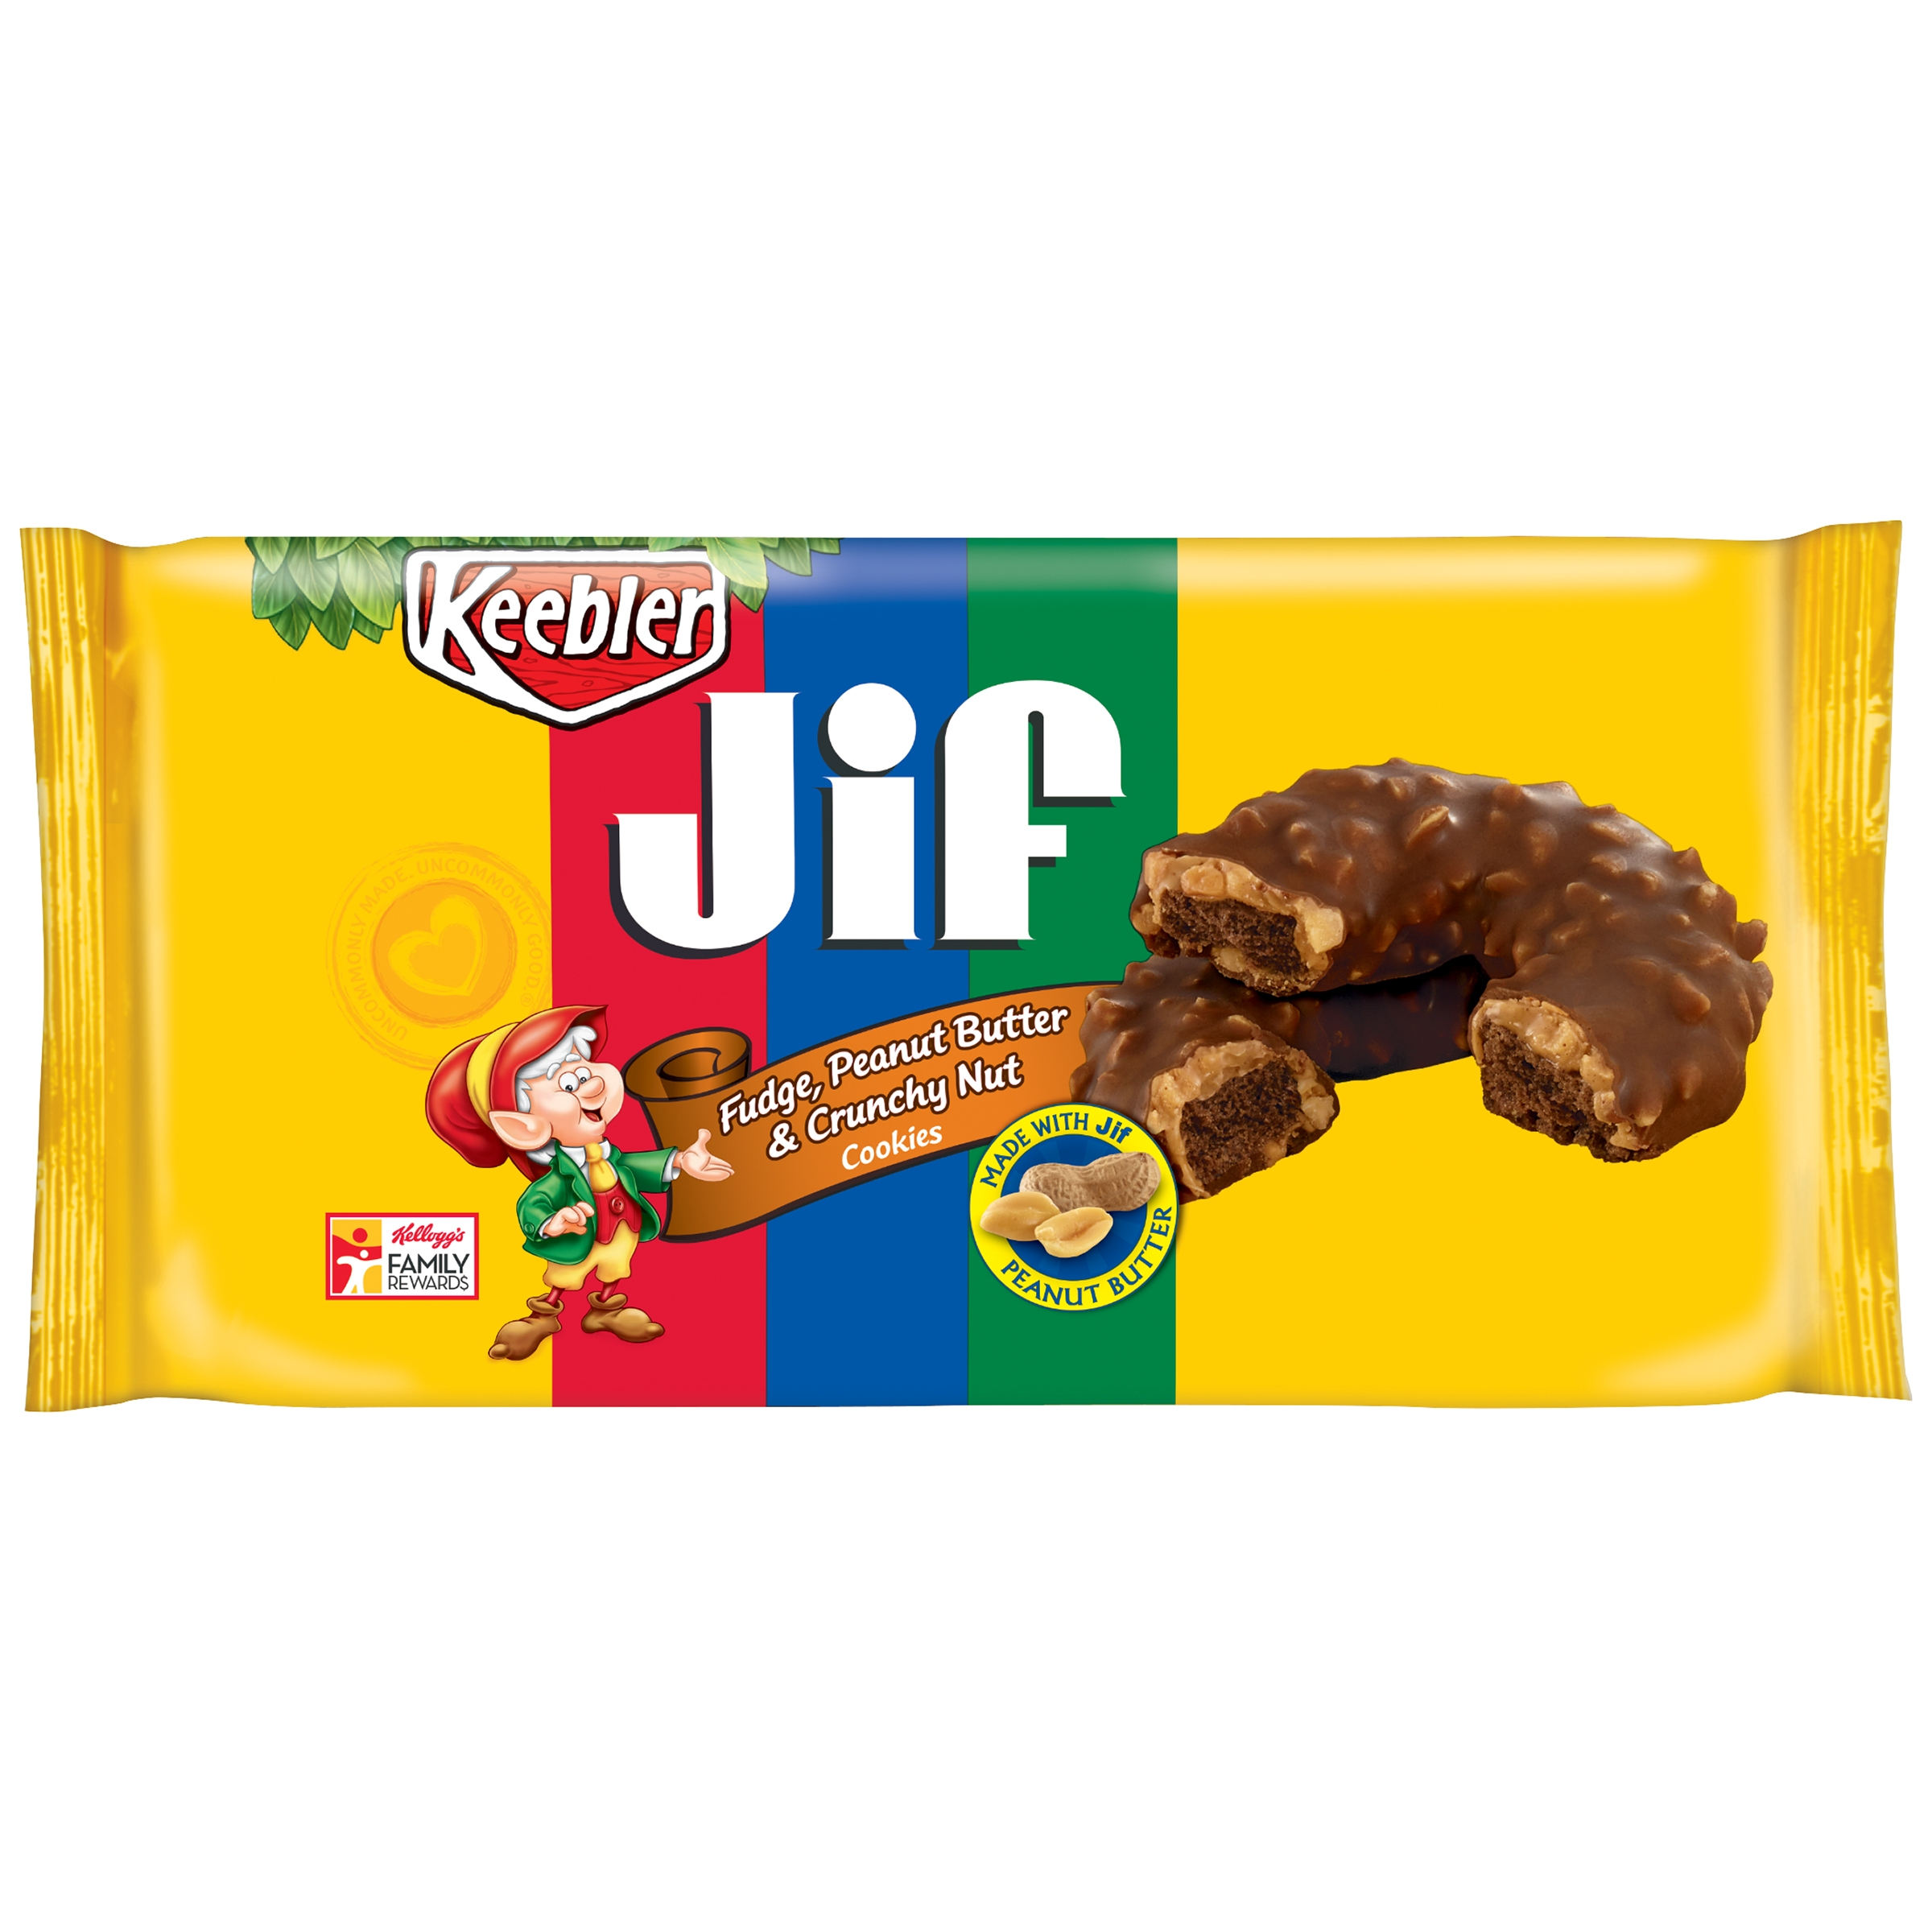 Keebler™ Jif® Fudge, Peanut Butter & Crunchy Nut Cookies 8 oz. Tray